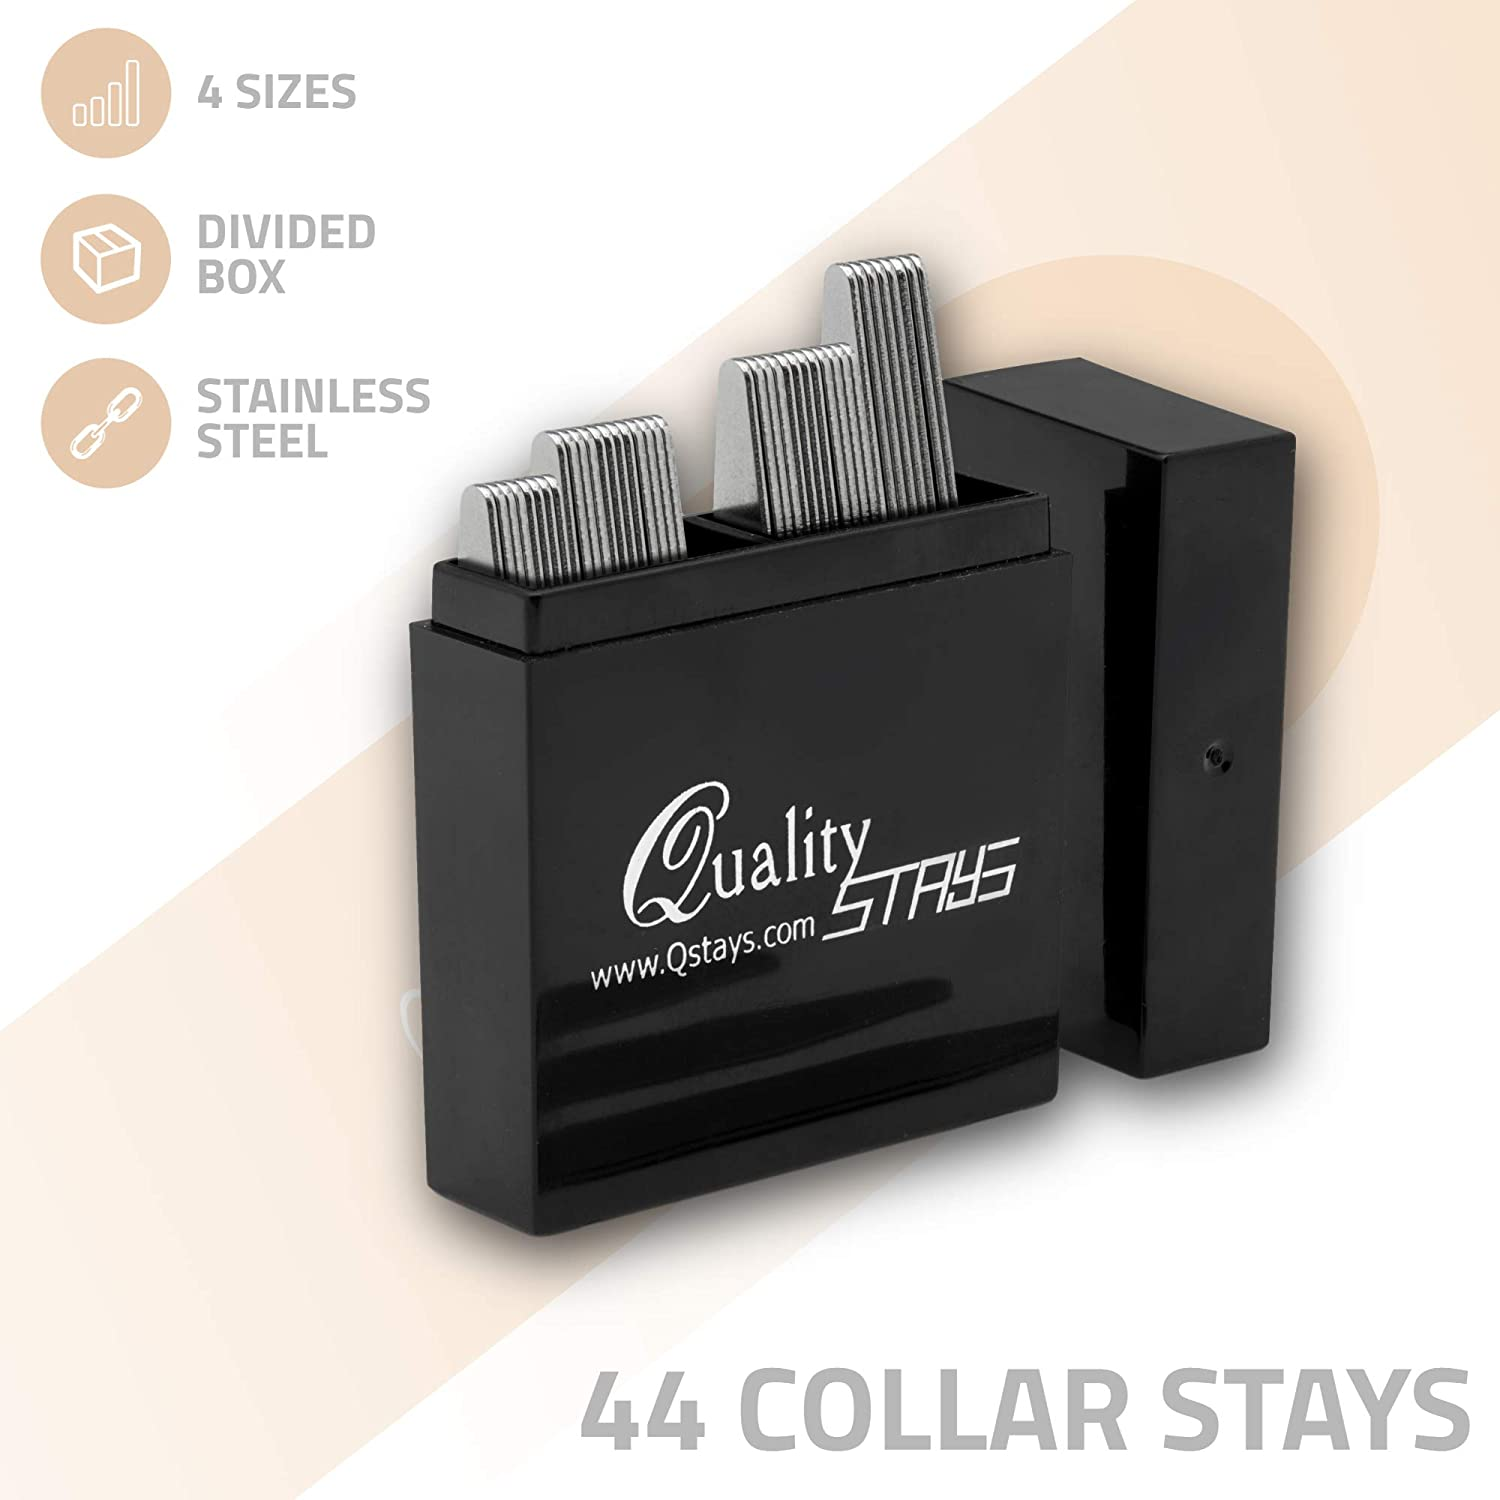 44 Metal Collar Stays - 4 sizes in a Box for Men (Mix)